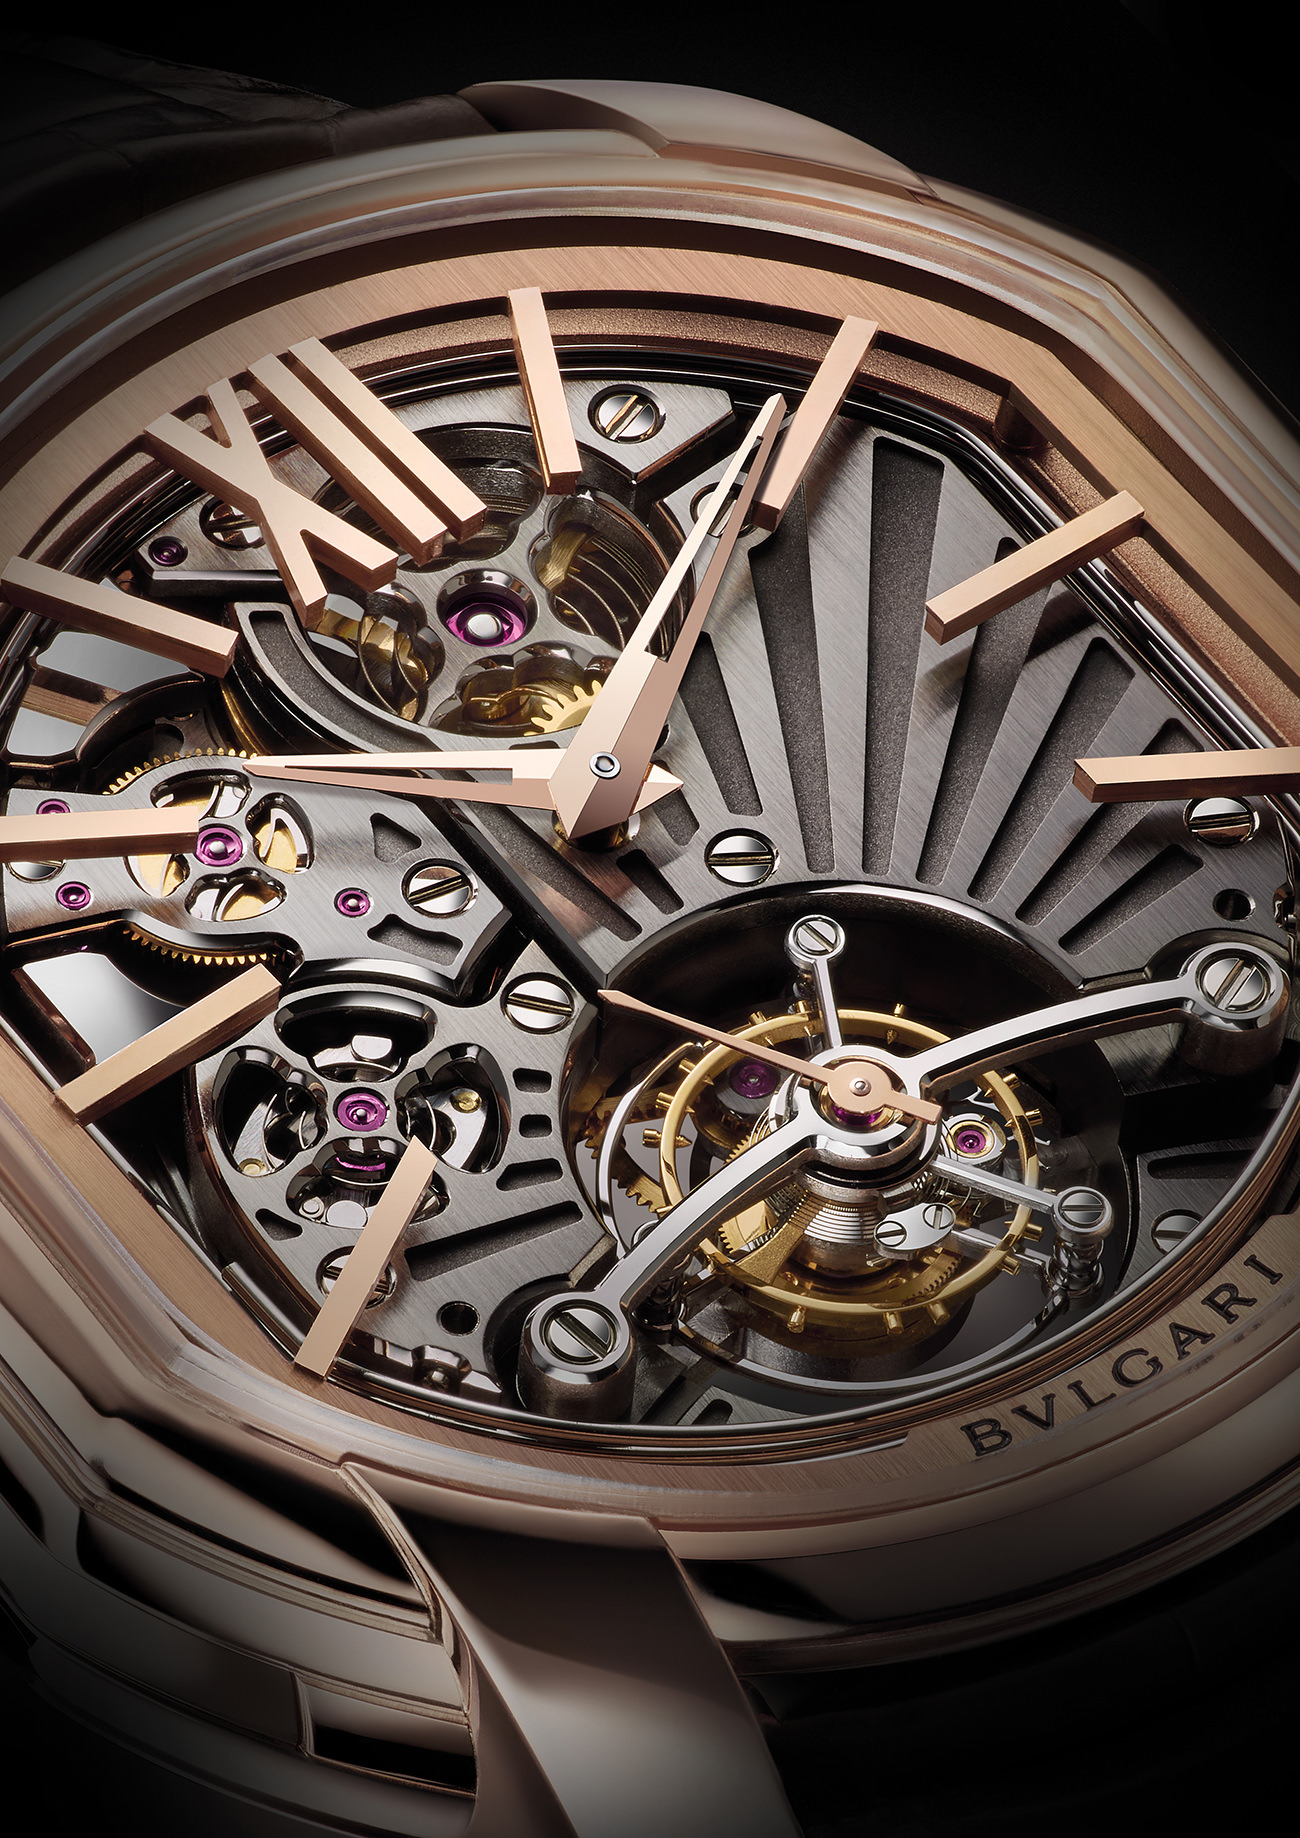 Bulgari-Carillon-Tourbillon-2